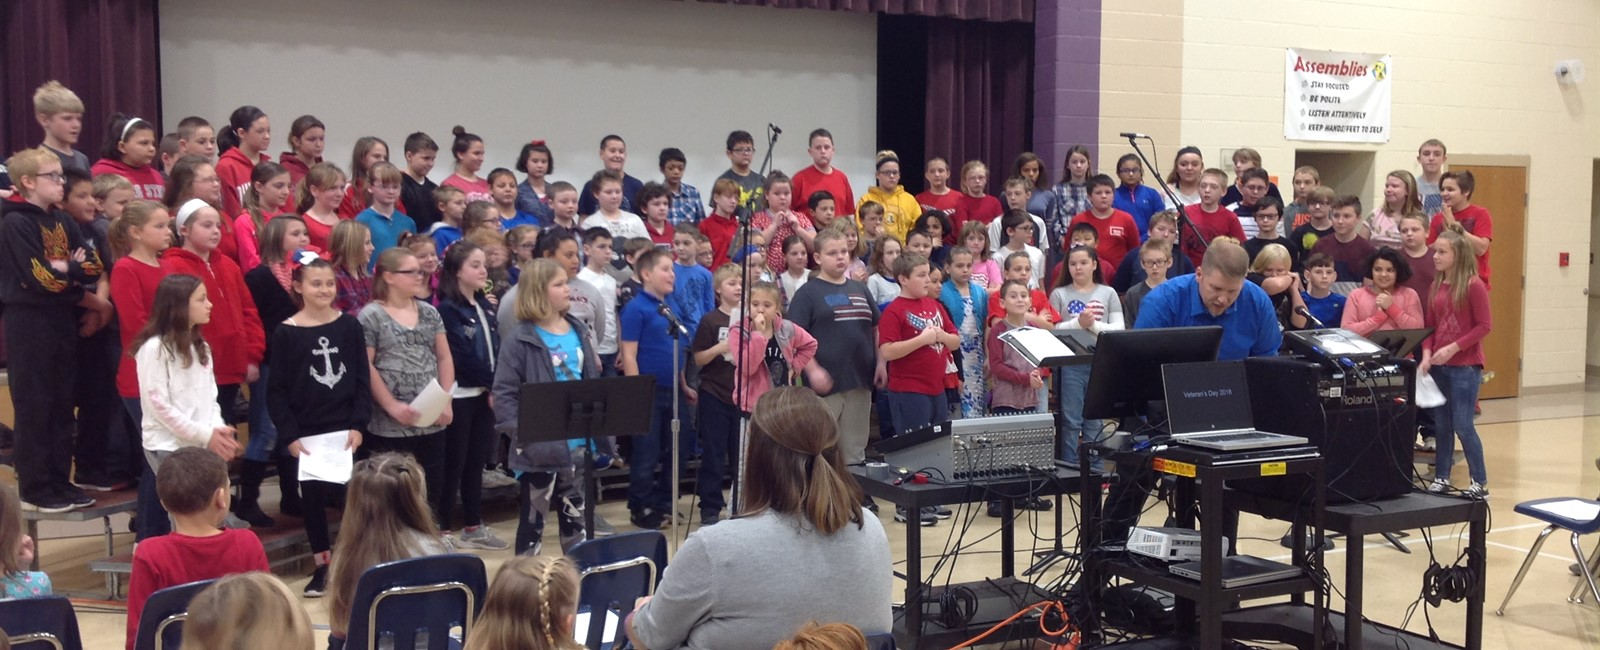 B.L. Miller Elementary School's Annual Veterans Day Program